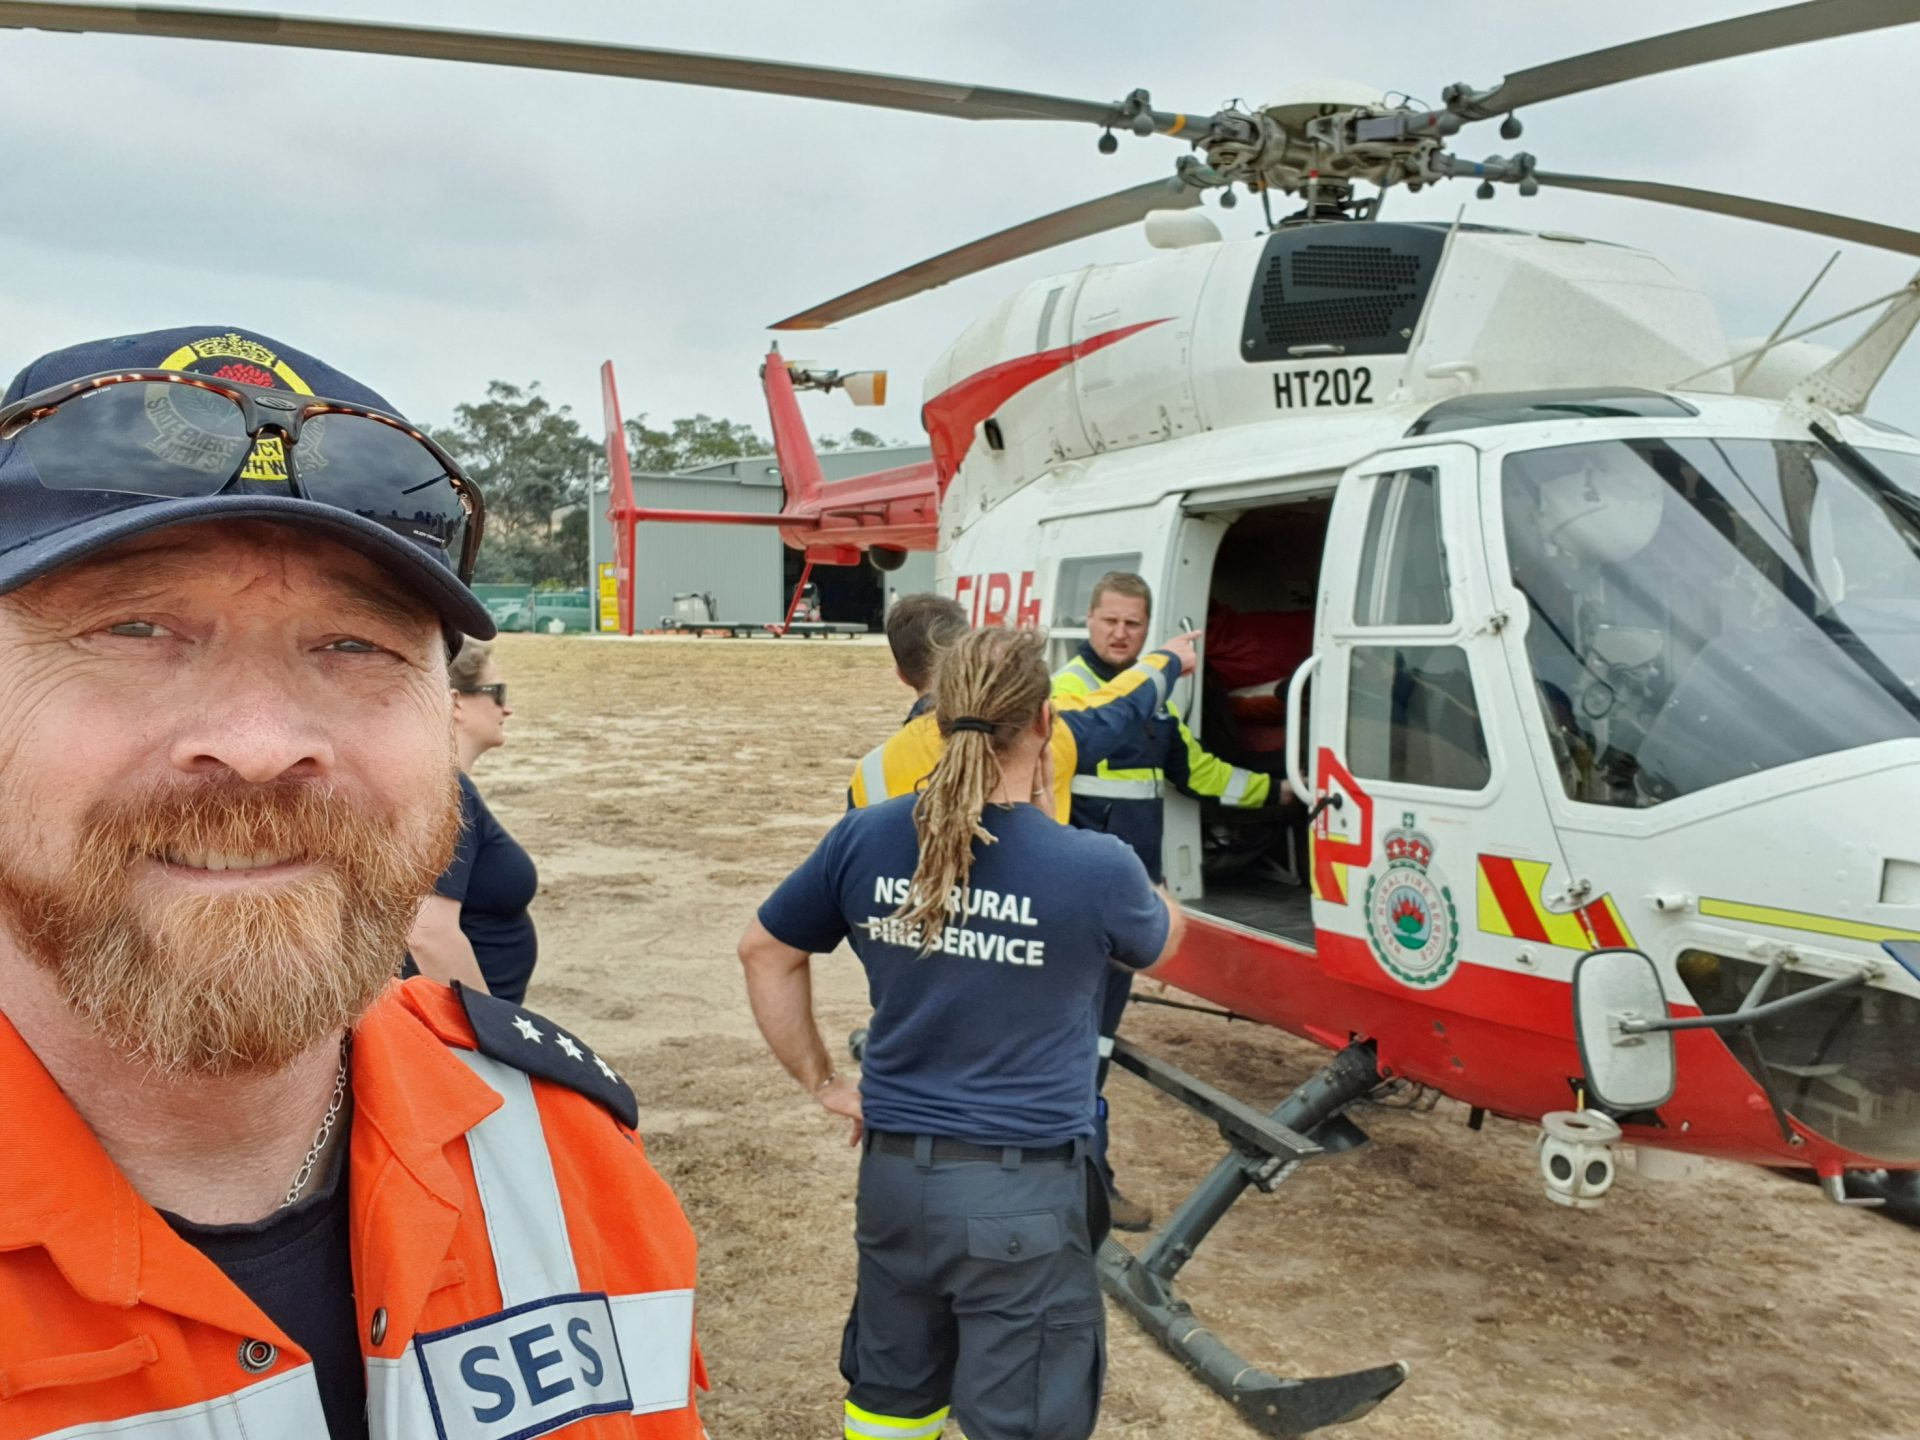 Anothor taking a selfie in front of an helicopter. Three other people are looking at the helicopter.